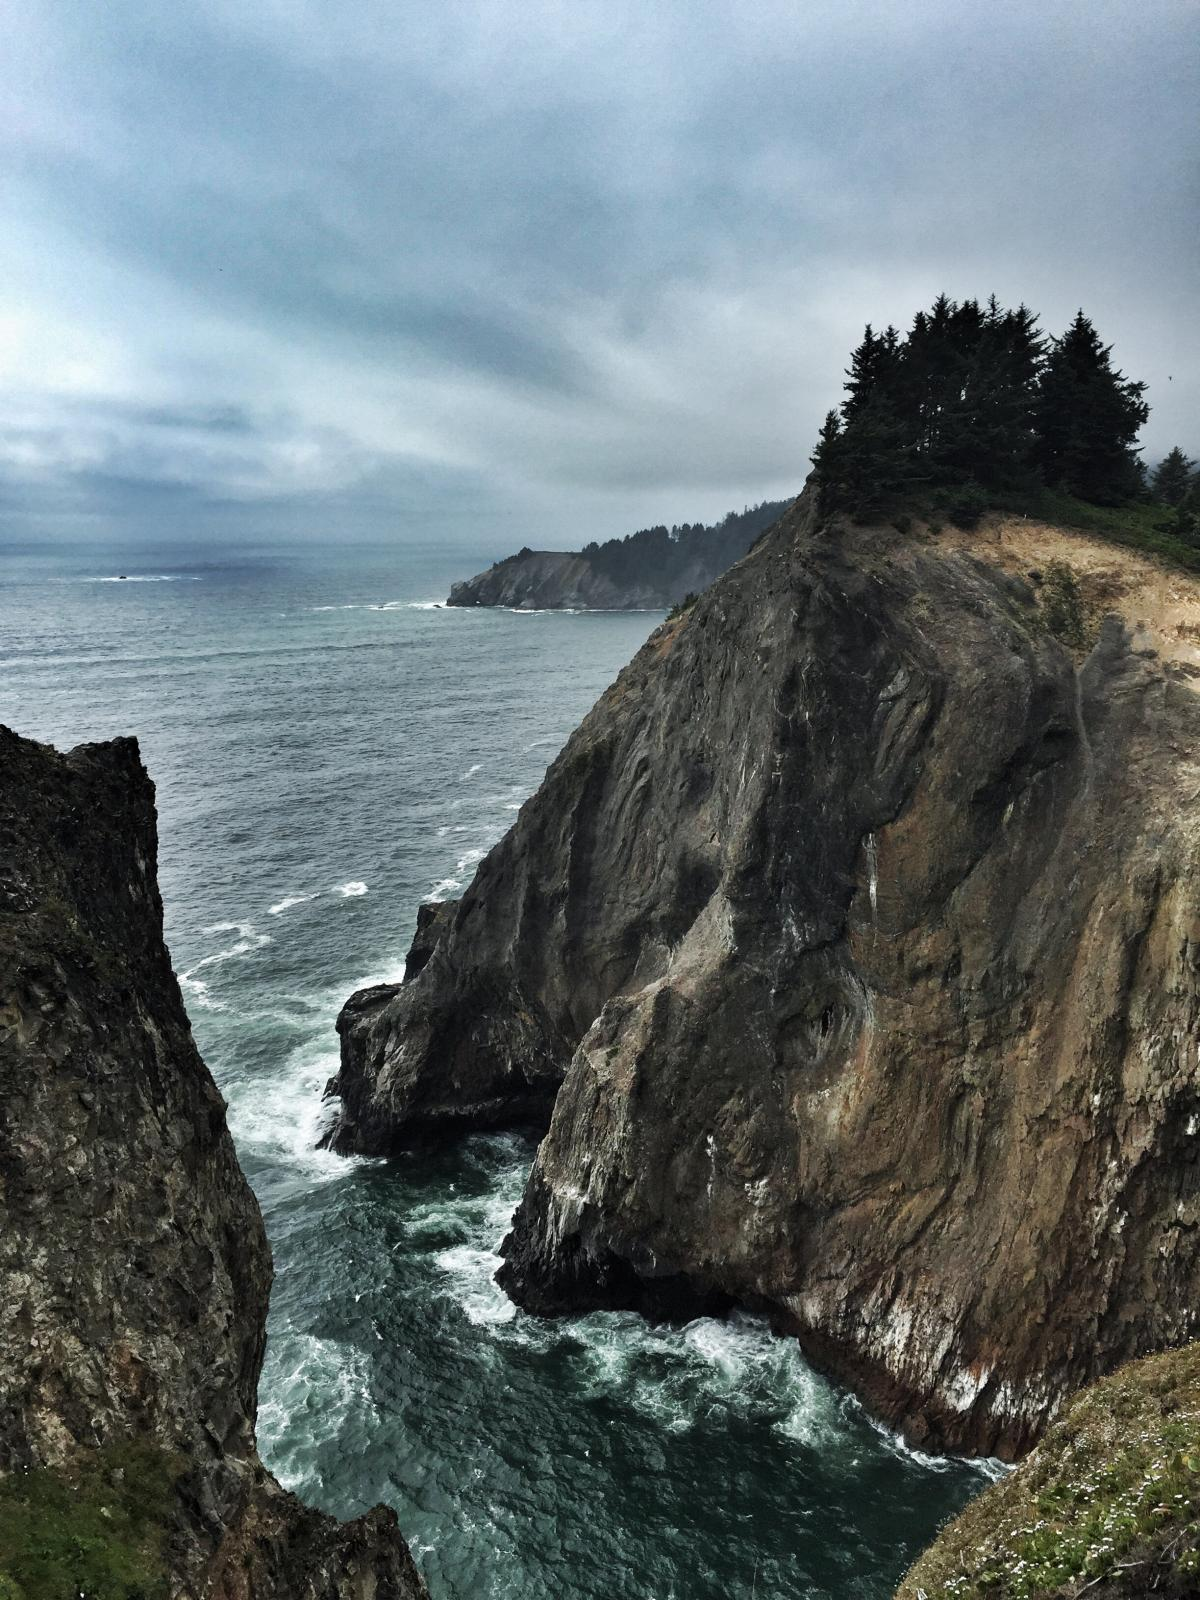 Image of the Devil's Cauldron in Arch Cape, Oregon.